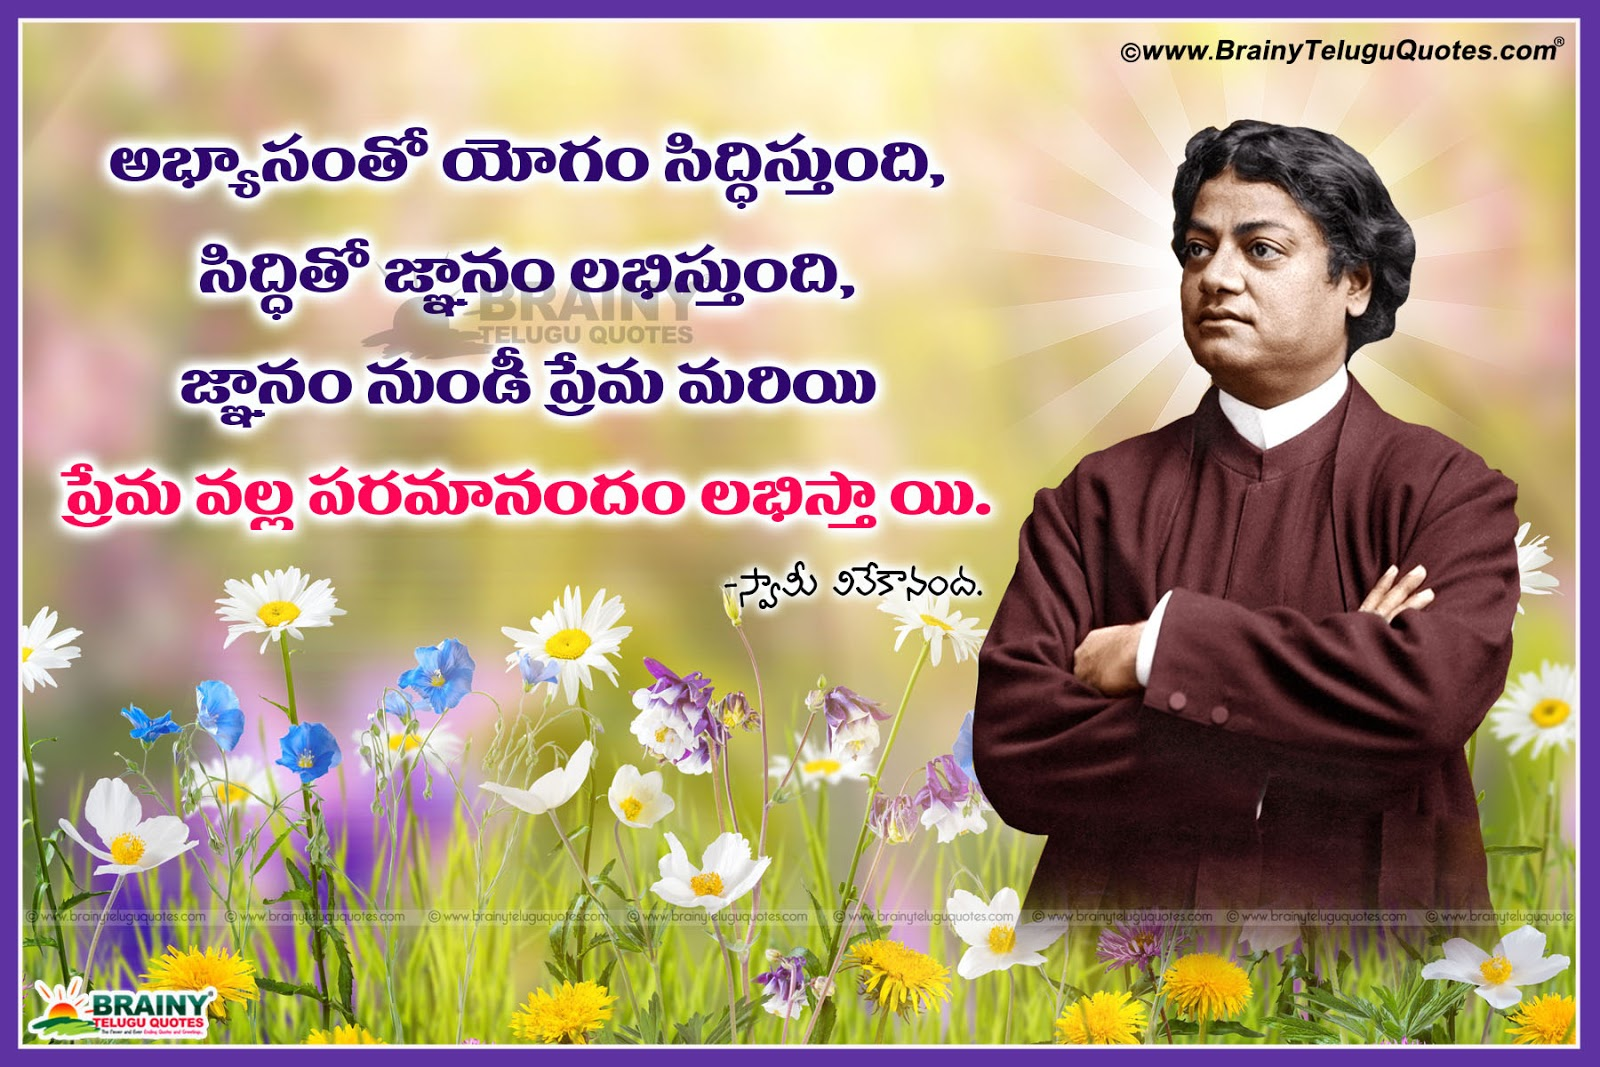 Telugu Motivational Quotes by Swami Vivekananda with ...